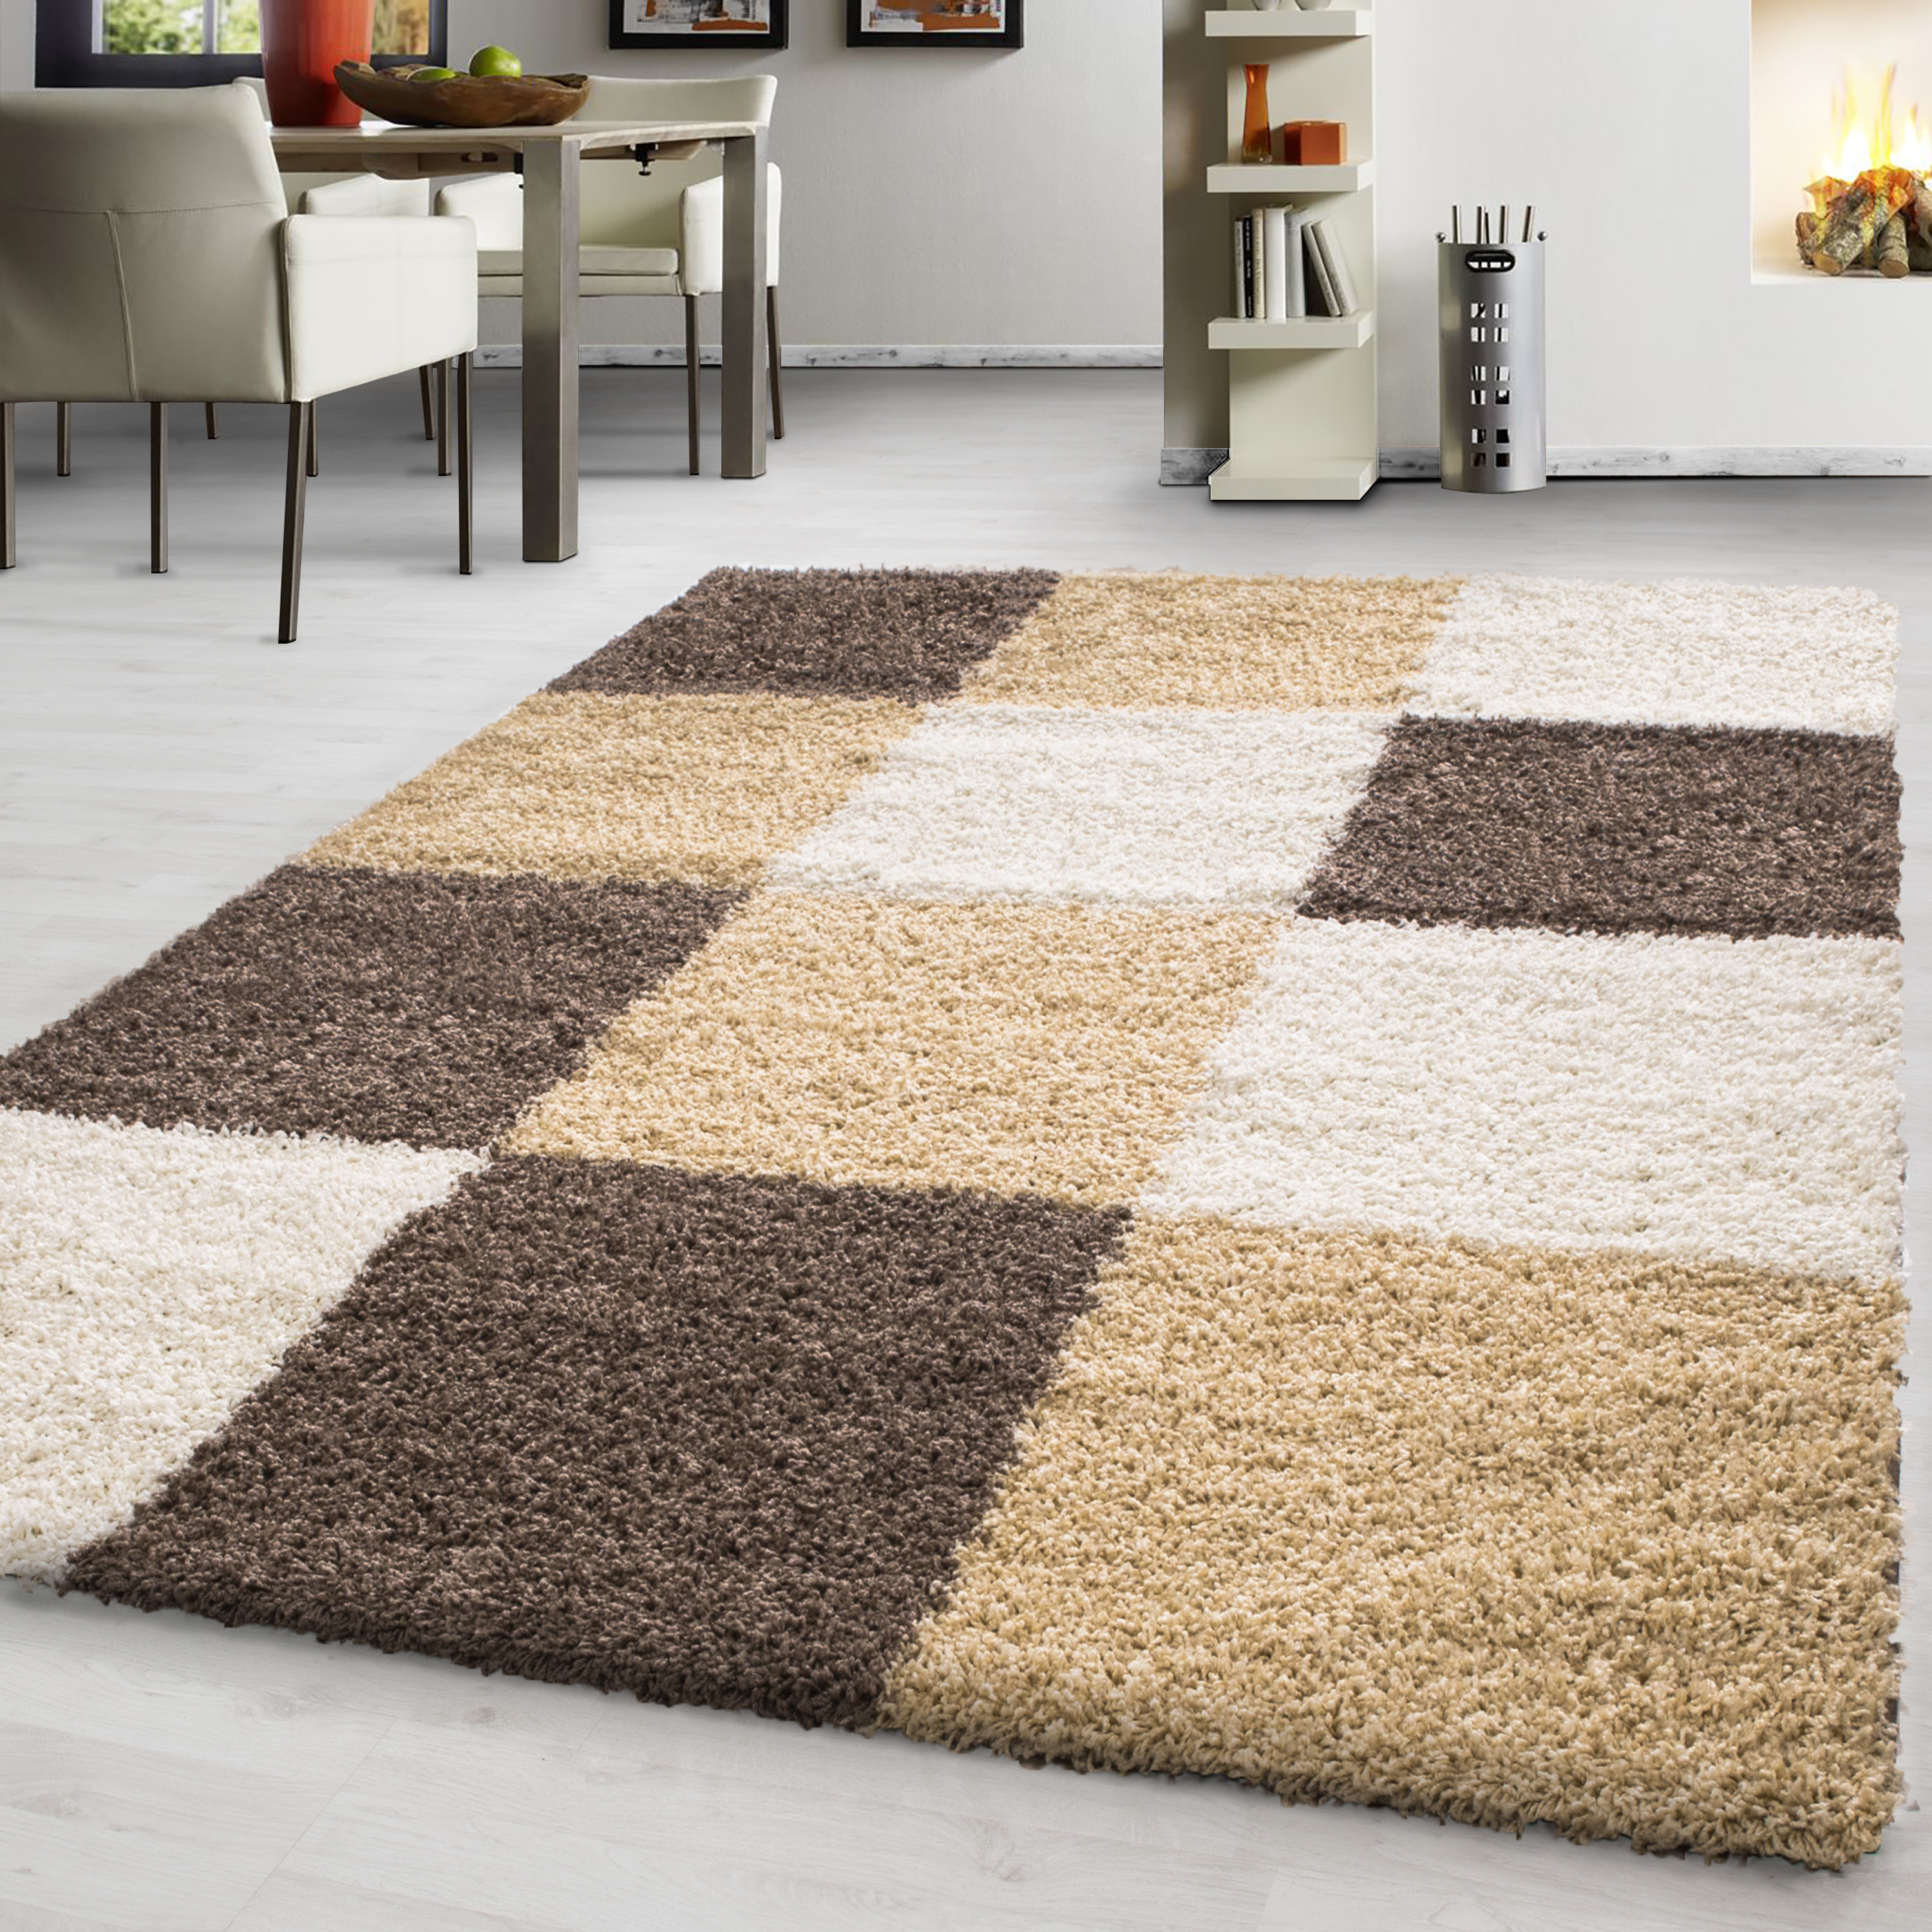 two tone chequered Shaggy fluffy carpet